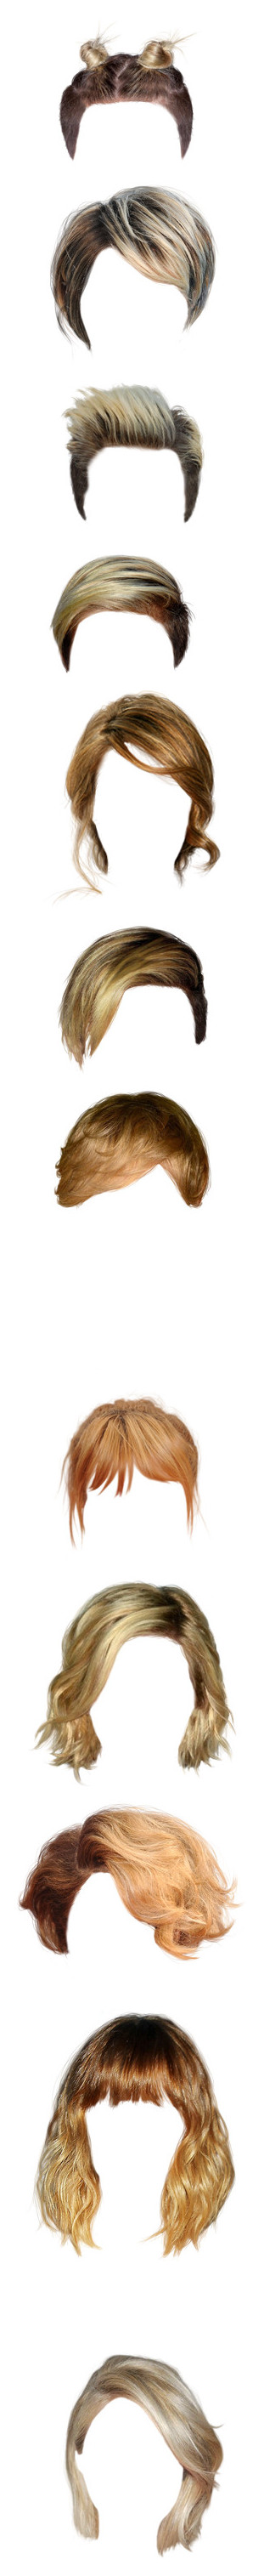 """""""hair only-2: blond hair"""" by poopsa-sympath ❤ liked on Polyvore featuring beauty products, haircare, hair styling tools, hair, wigs, blonde, doll parts, dolls, doll hair and hairstyles"""